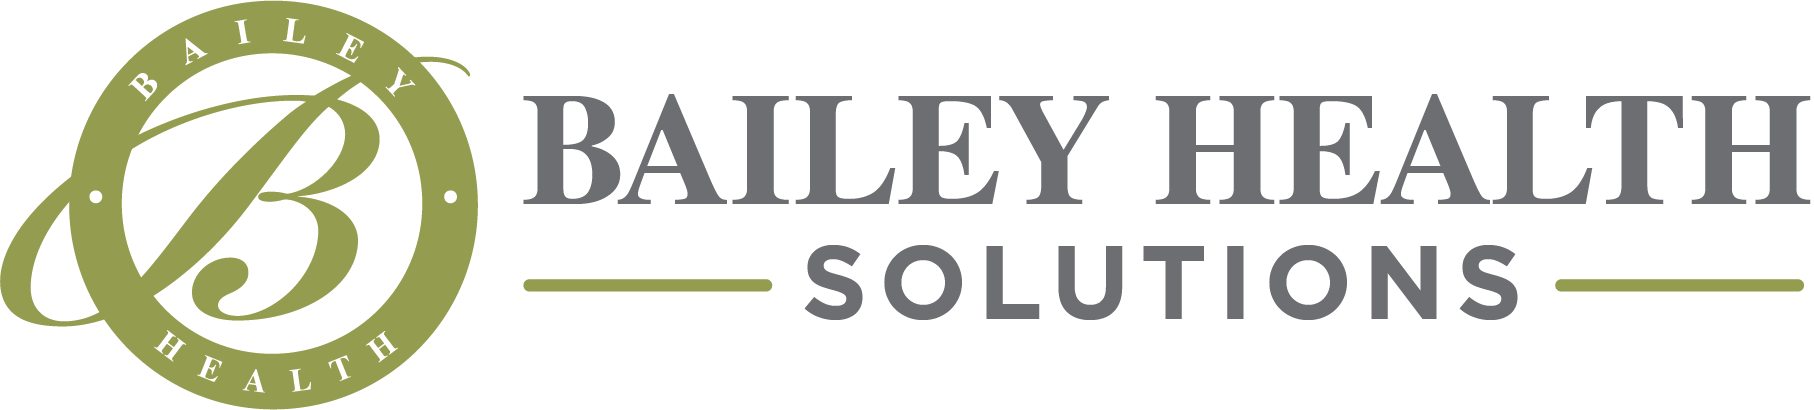 bailey-health-solutions